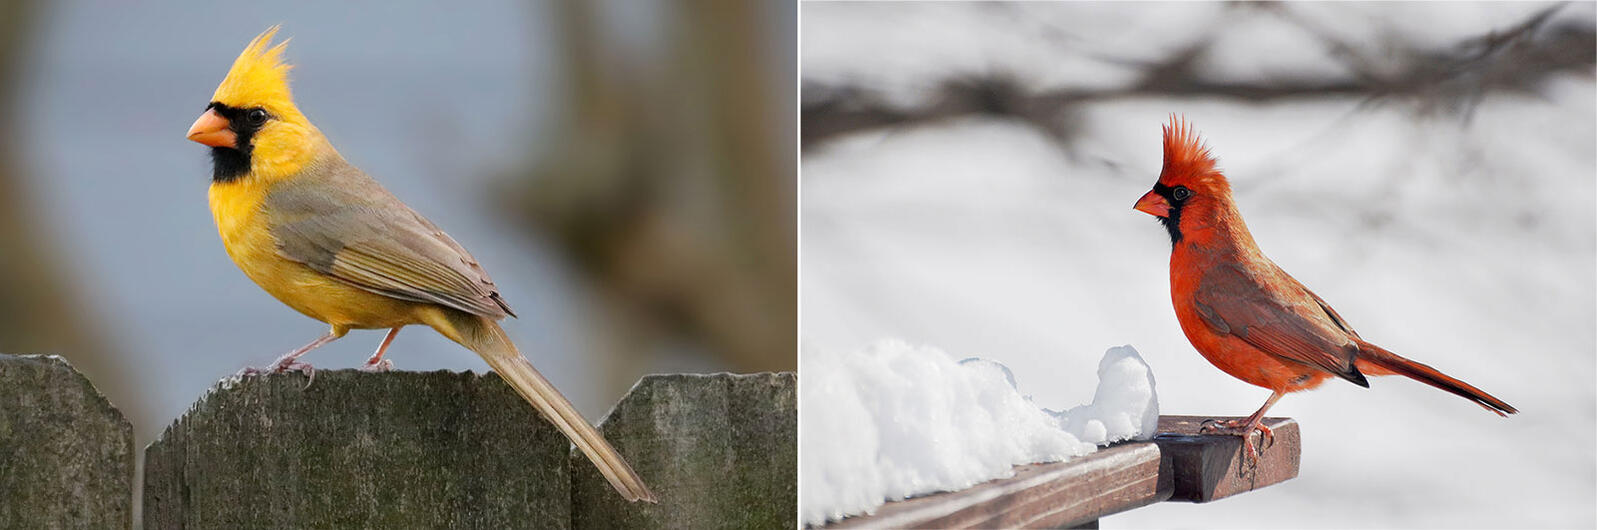 The bombshell yellow Northern Cardinal from Alabama (left) compared to a regular old Northern Cardinal (right). Photos: Jeremy Black Photography; Diane Wurzer/Audubon Photography Awards